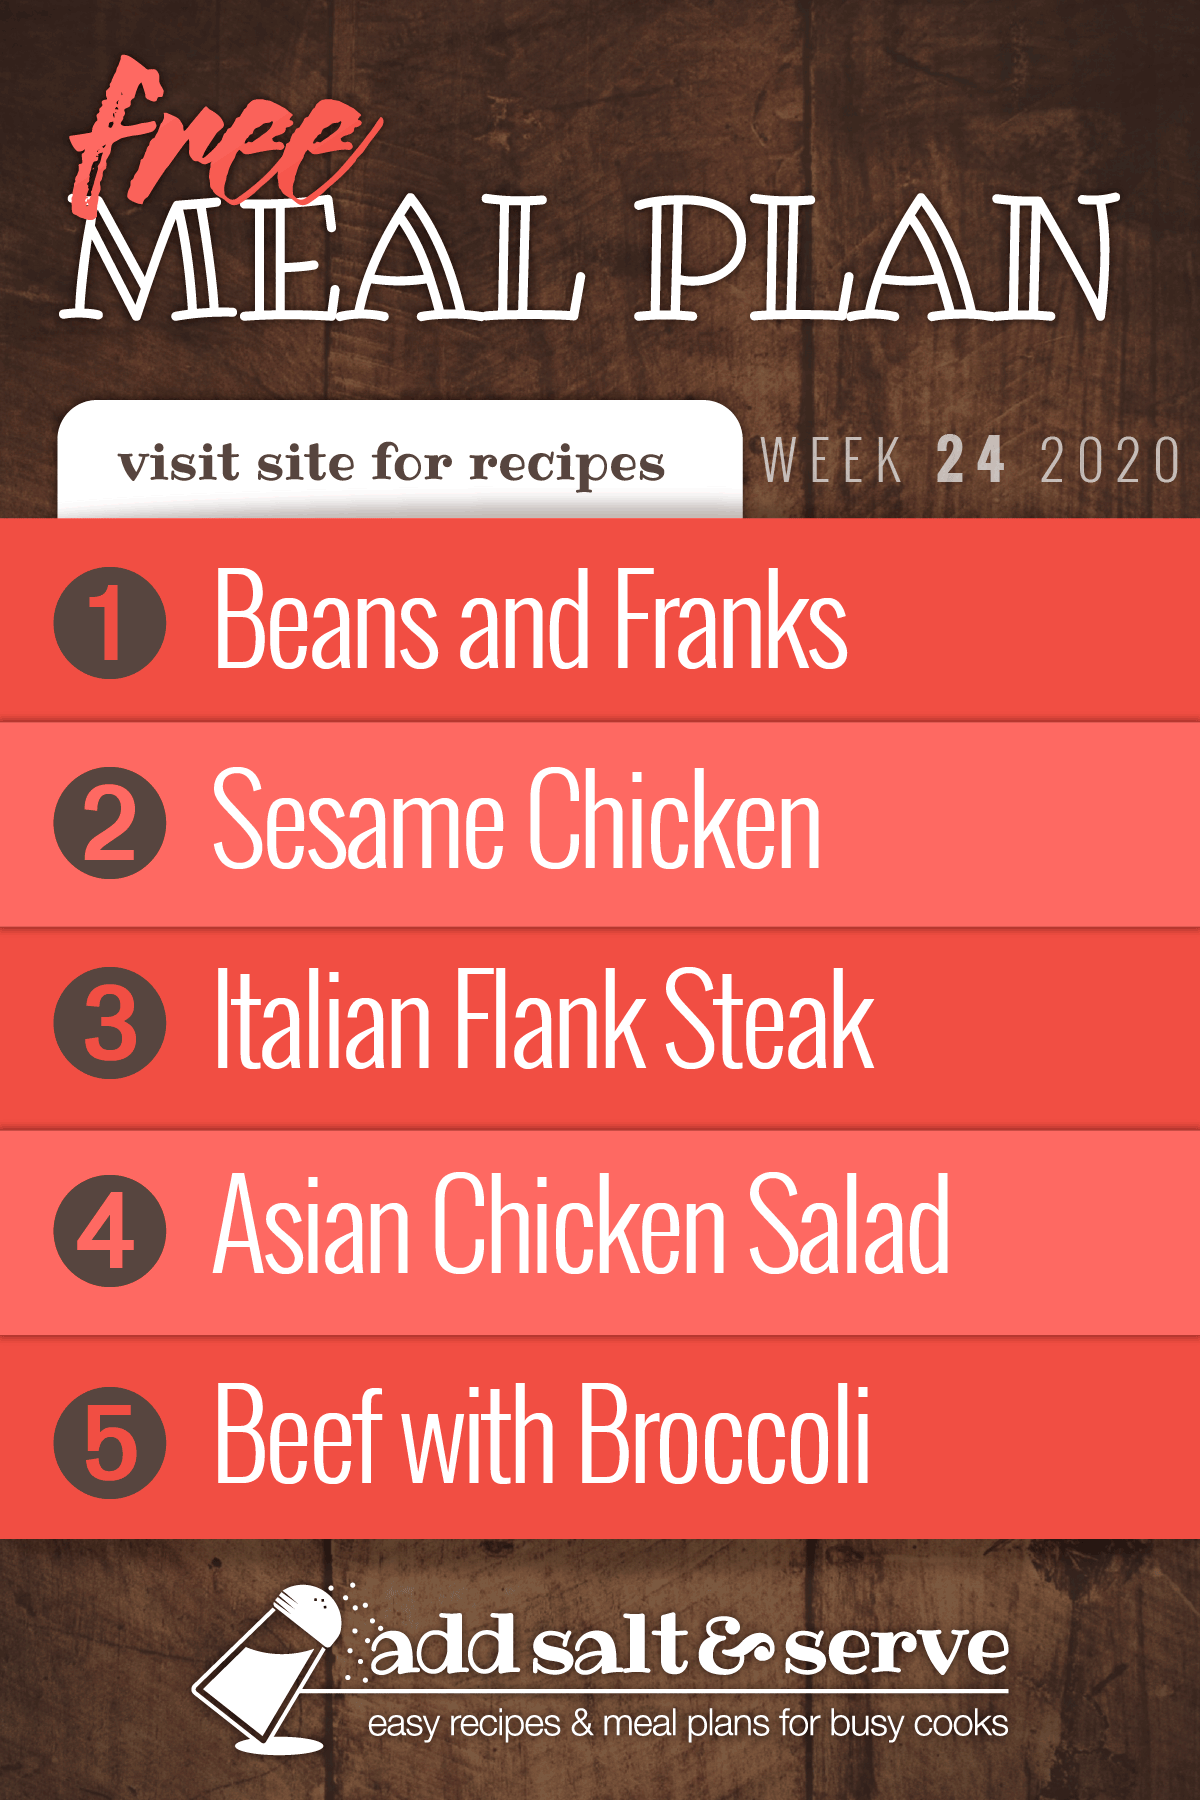 Free Meal Plan for Week 24 2020: Beans and Franks, Sesame Chicken, Italian Flank Steak, Asian Chicken Salad, Beef with Broccoli - Visit site for recipes Add Salt & Serve